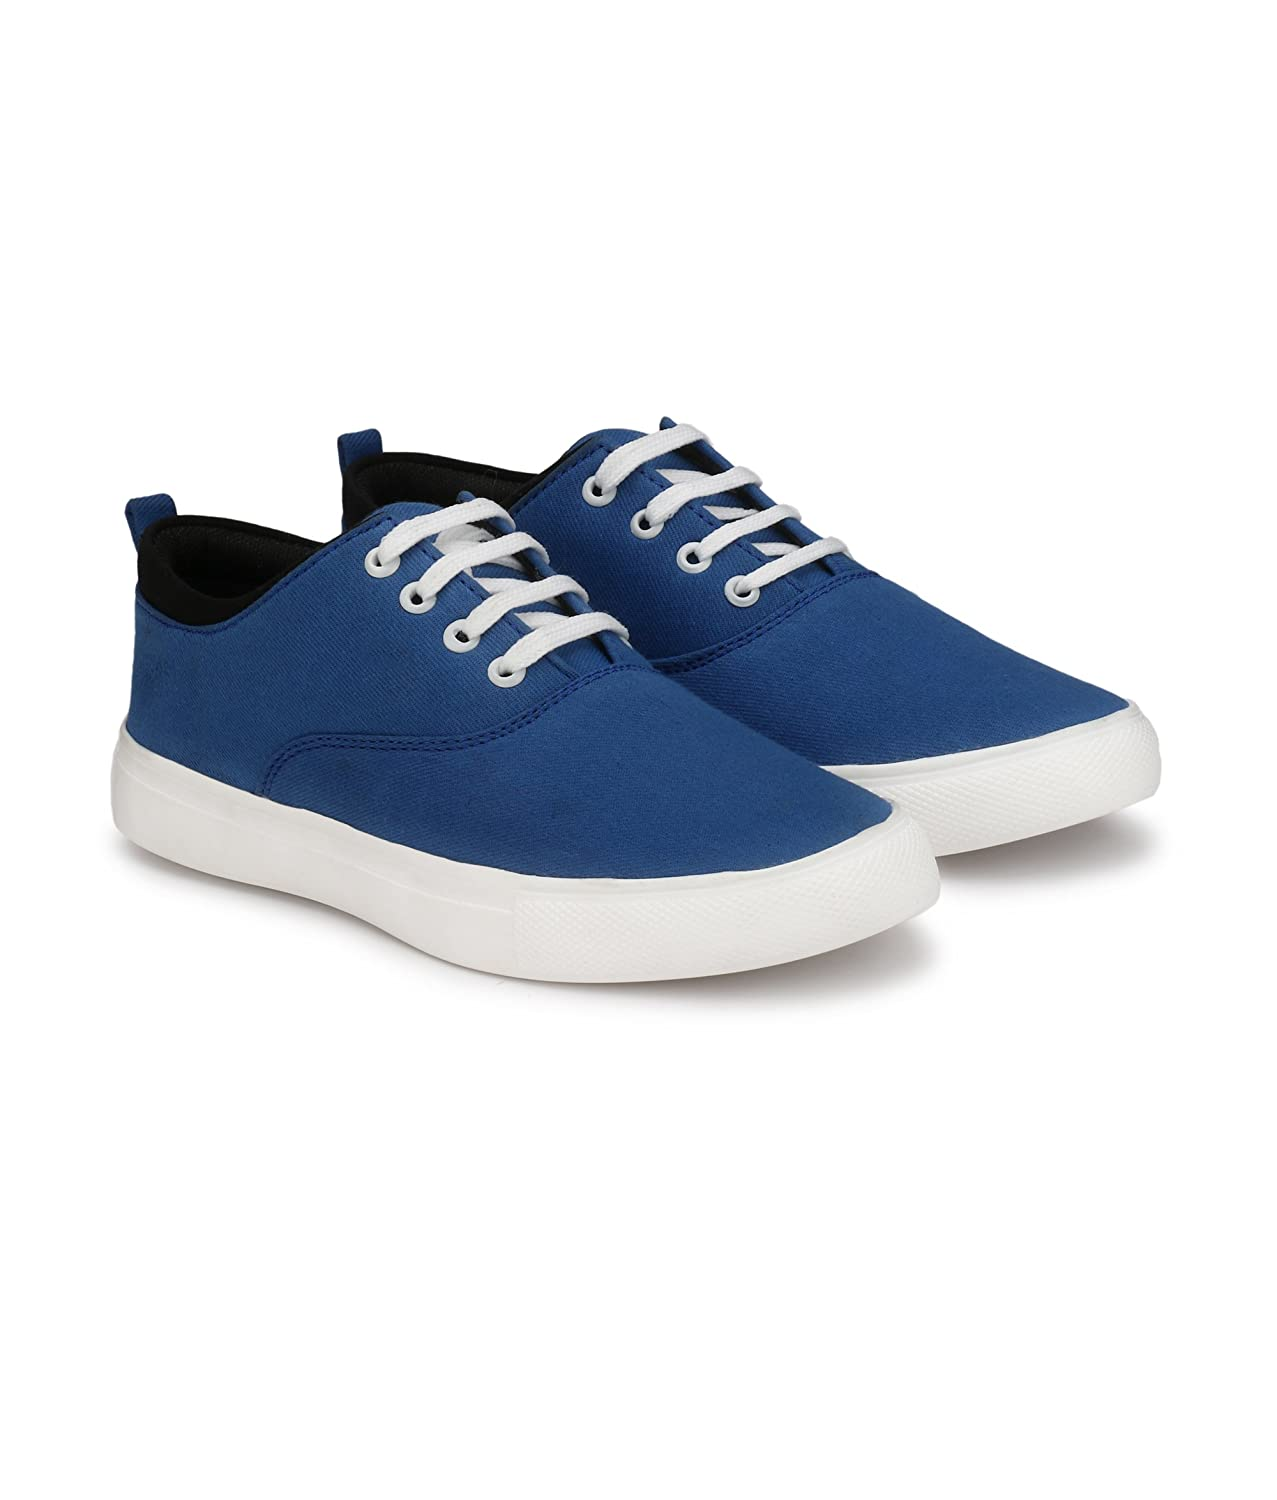 08bdfe5c0285d CEONA Men's Dark Blue Causual Shoes, Men's Dark Blue Casuals Shoe,Blue  Casual Shoes for Mens, Men's Casual Canvas Shoes in Blue, Colour,Shoes for  Mens ...